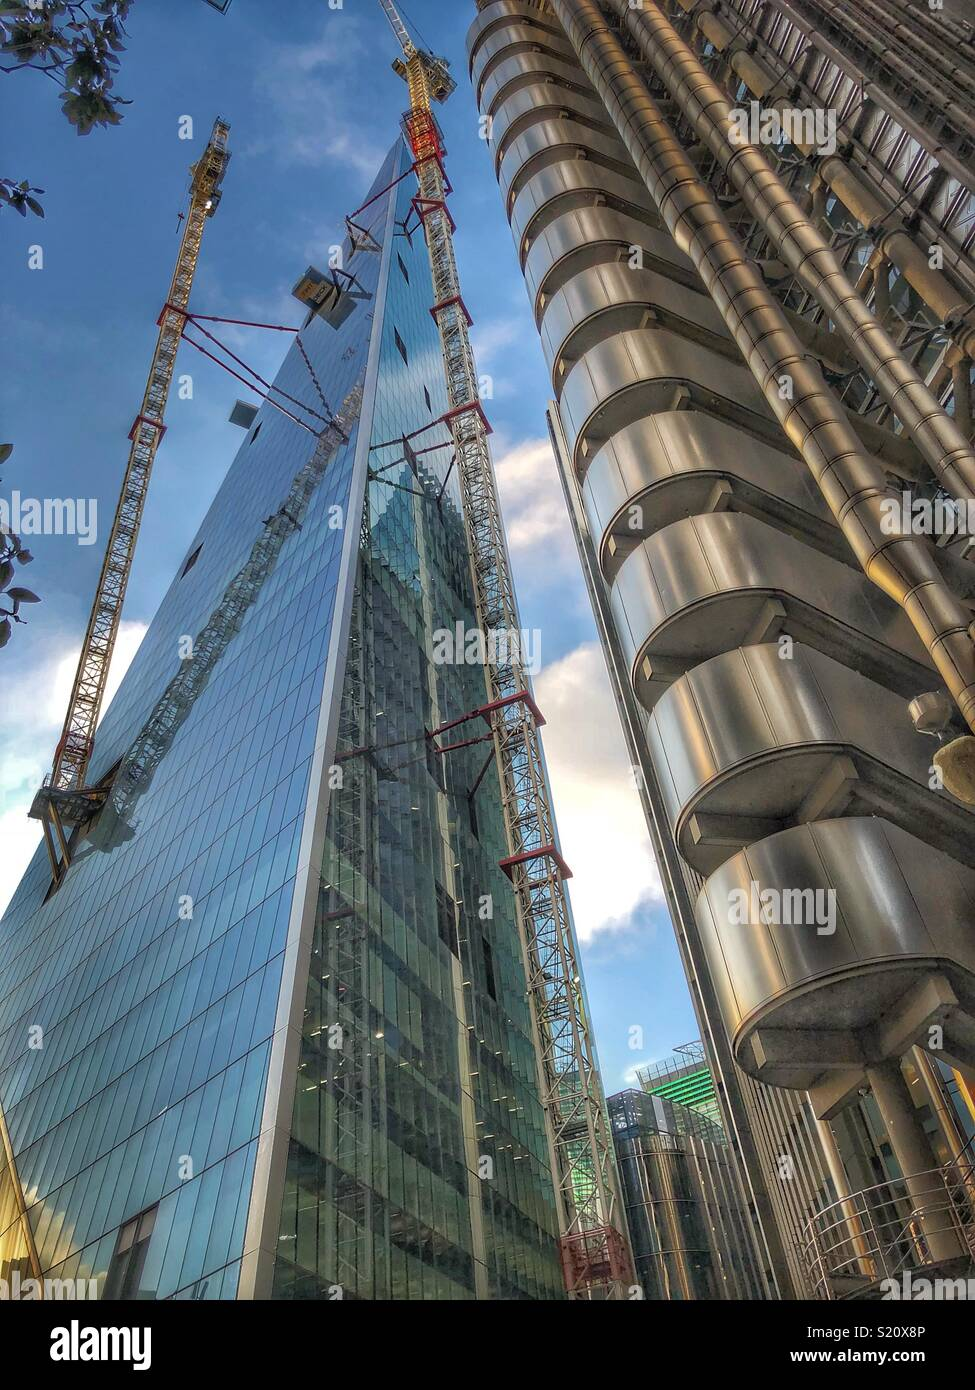 The scalpel building & Lloyds building in London - Stock Image